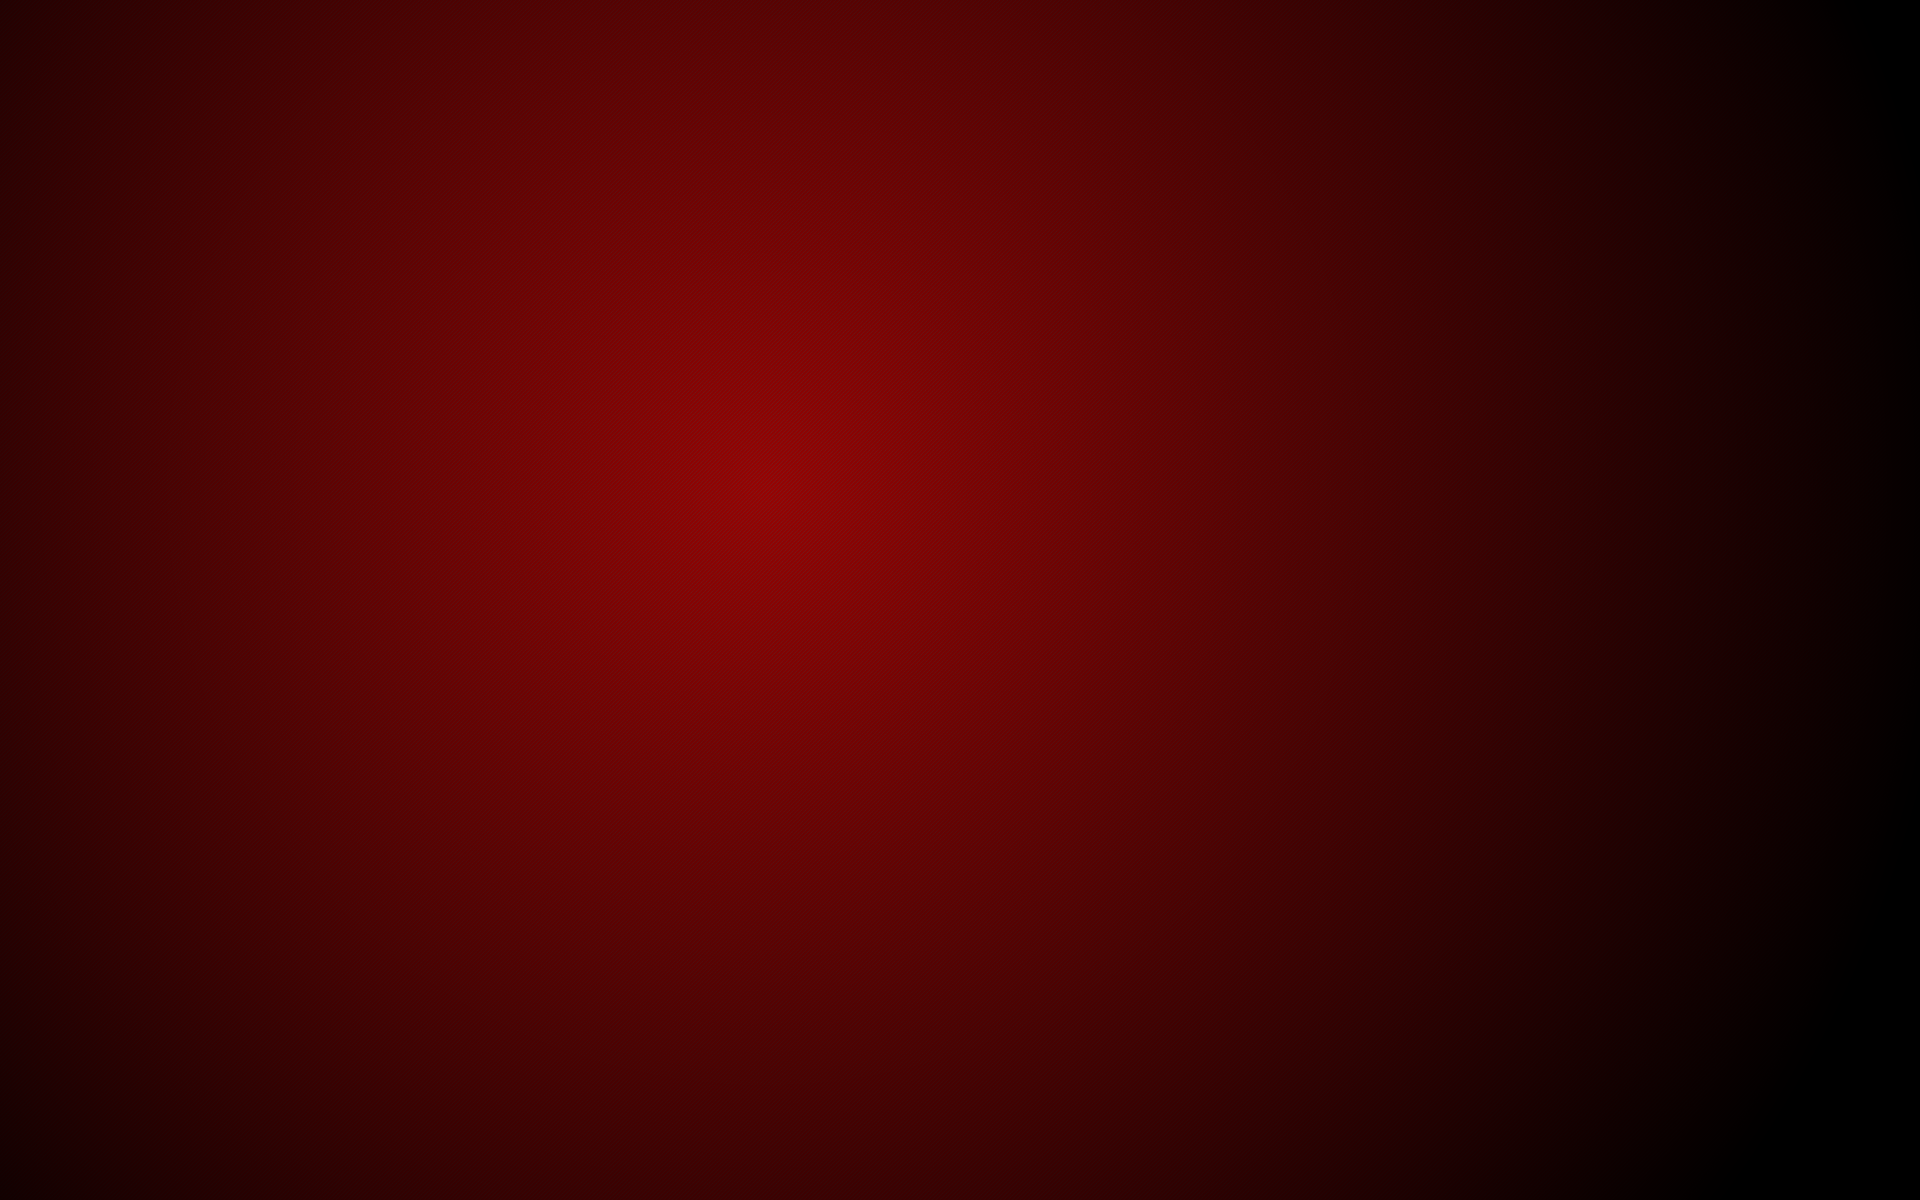 Red Hd Wallpaper Dark Red Gradient Bac 970448 Png Images Pngio